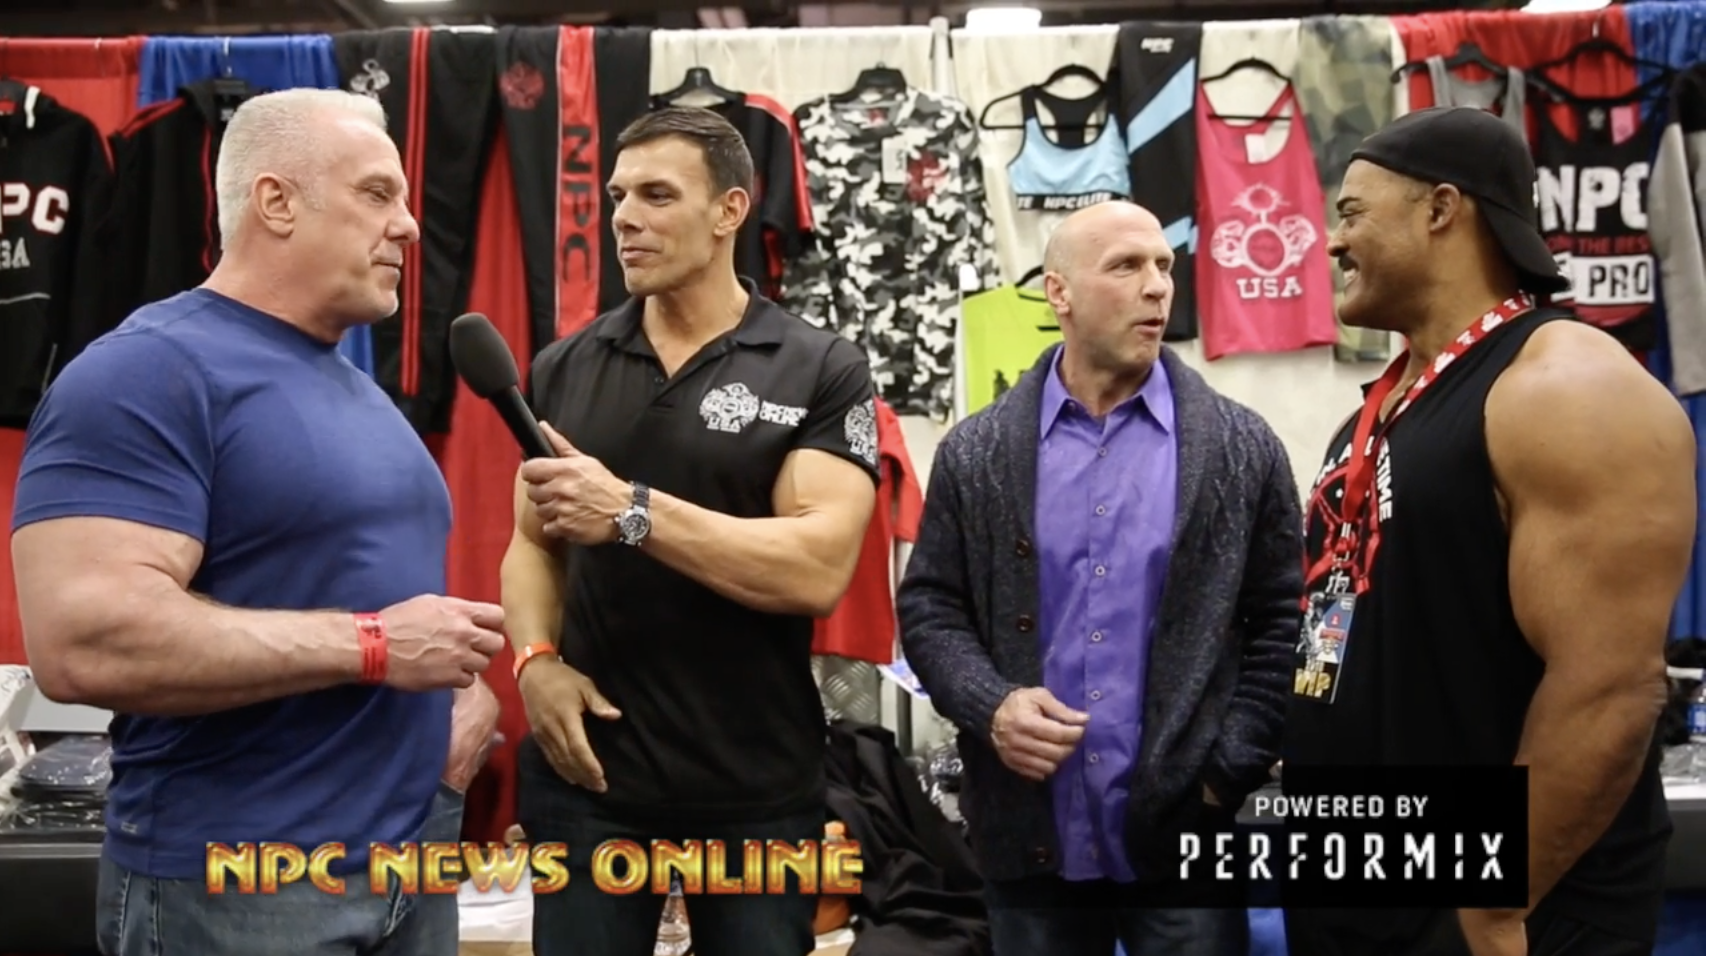 1993 NPC Nationals Reunion Video: Dean Caputo, Mike Francois & Don Long- Hosted By Frank Sepe